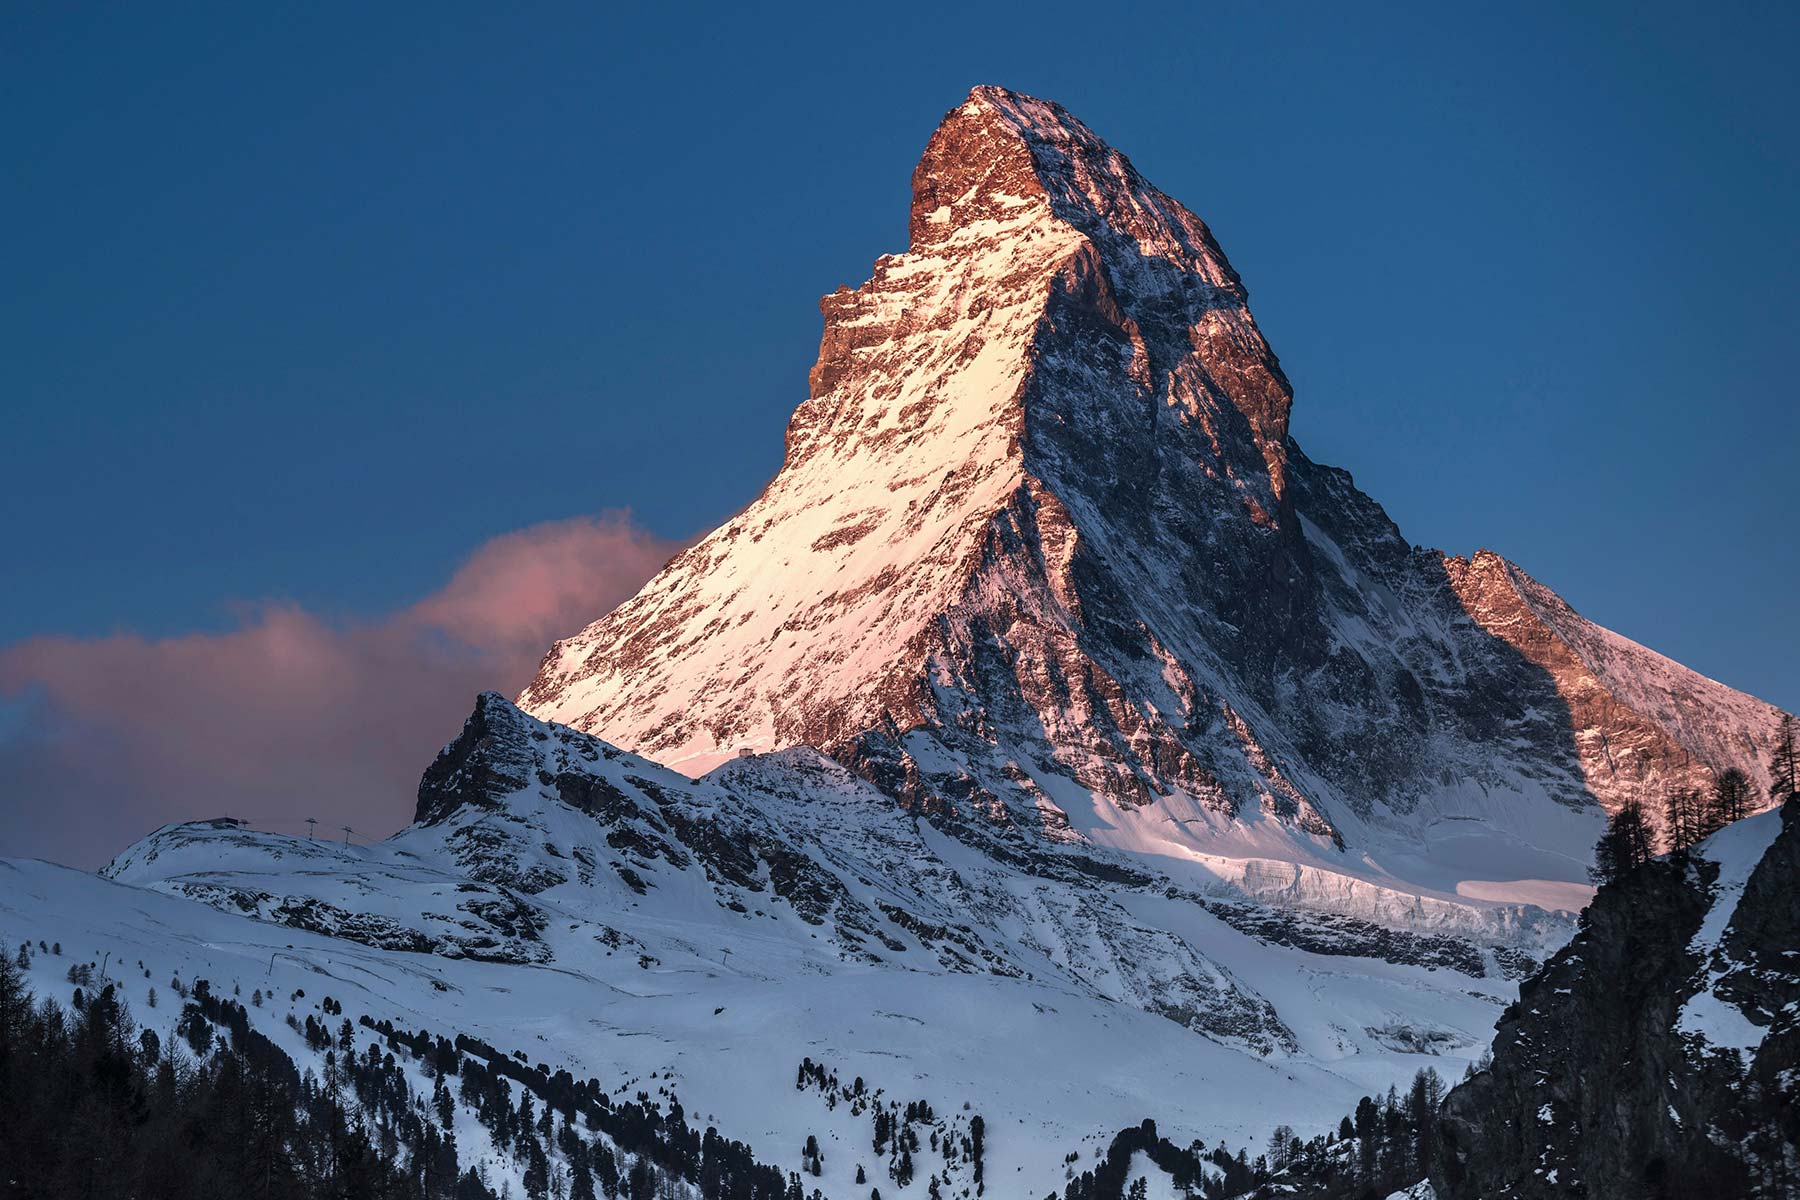 Matterhorn snow peak mountain